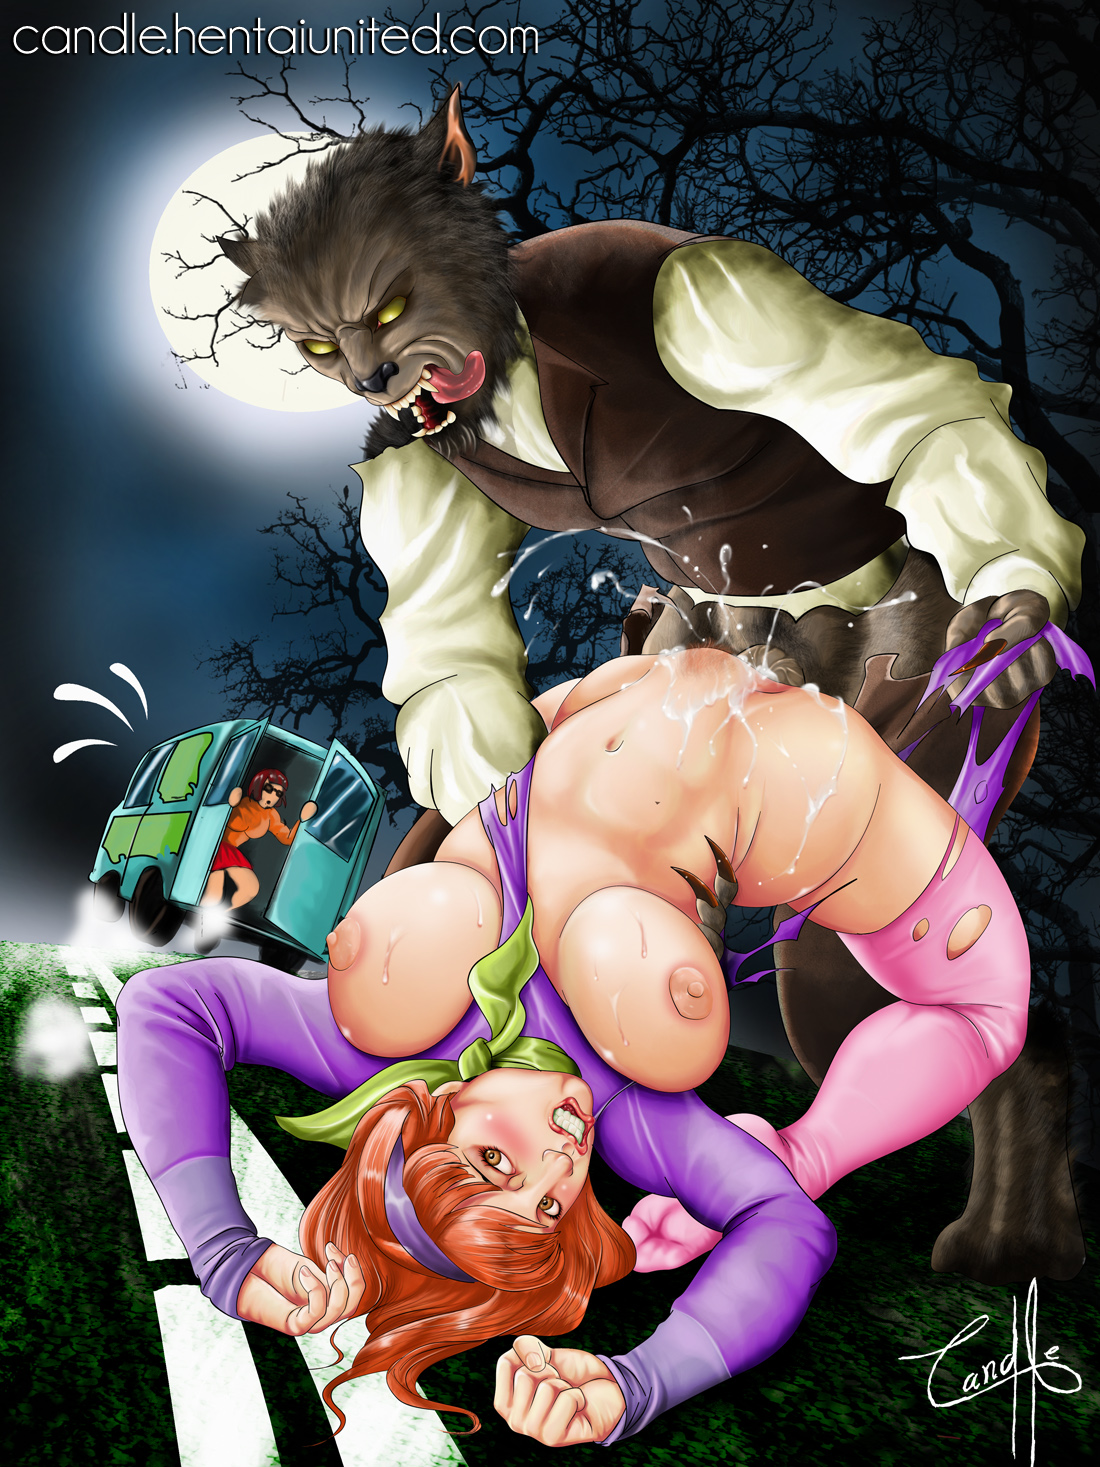 Monster hantal porn cartoon 3gp erotic gallery